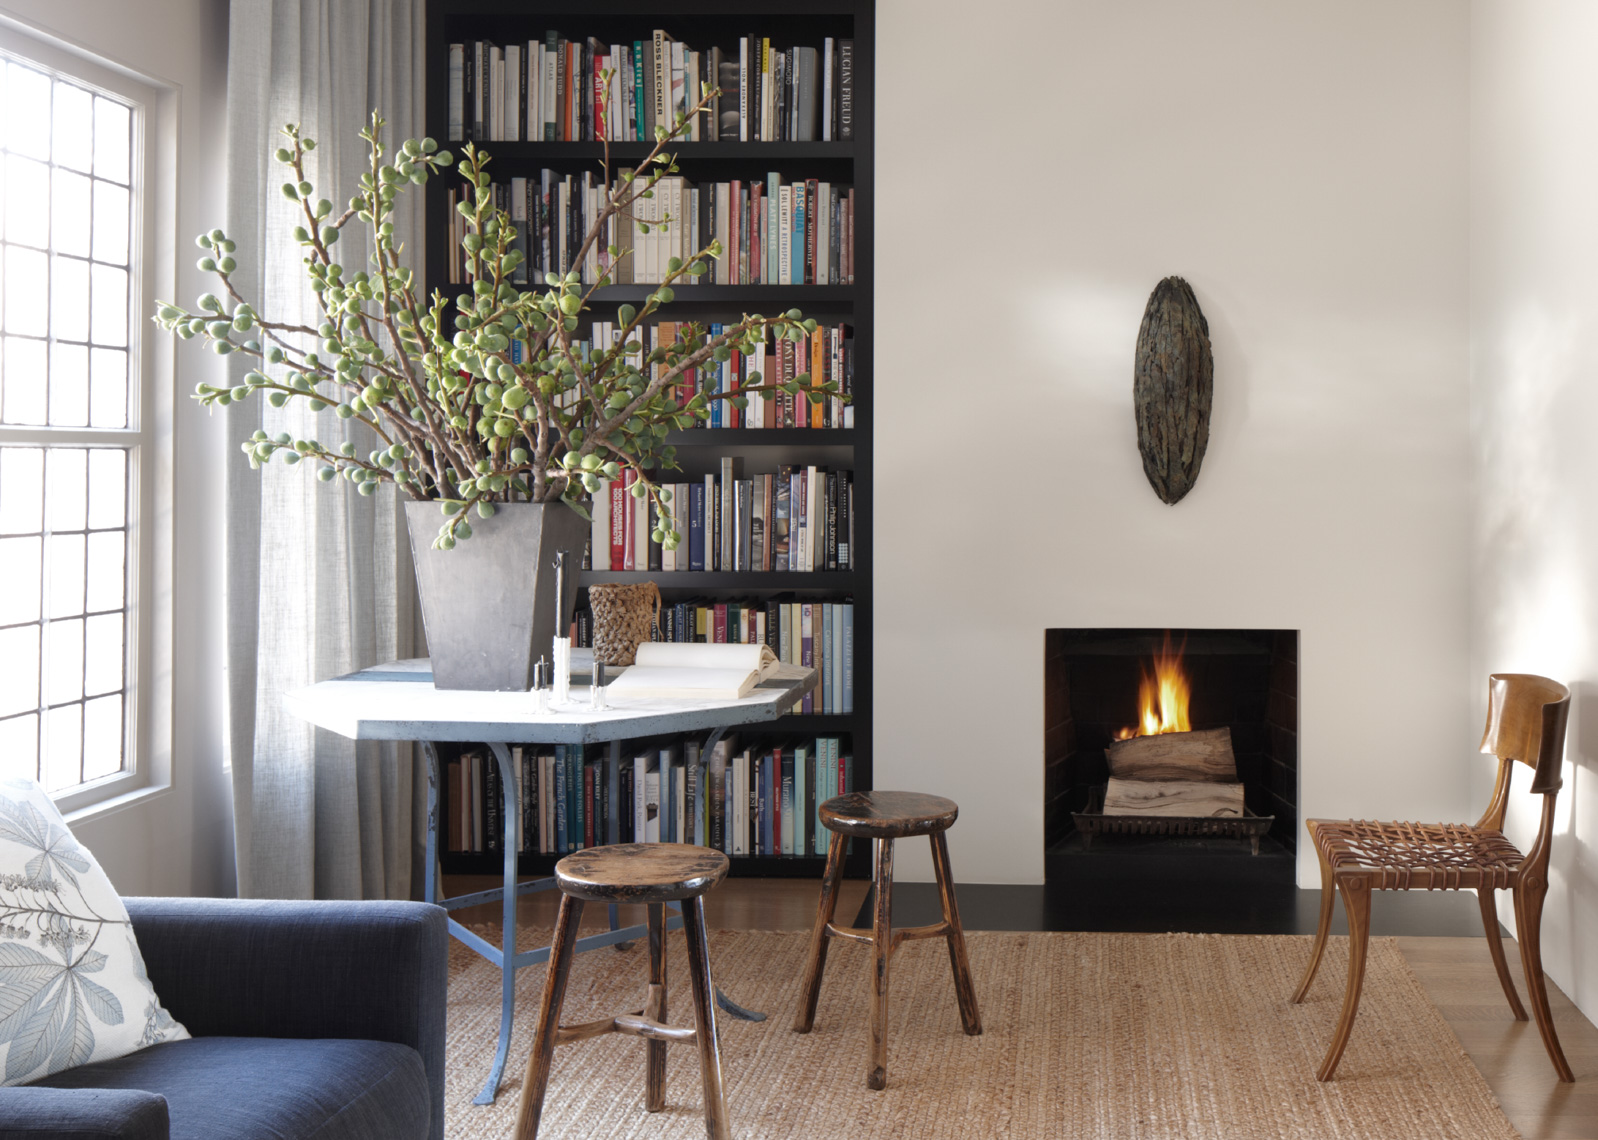 home interior with fireplace with wooden stools and bookshelf San Francisco interior photographer